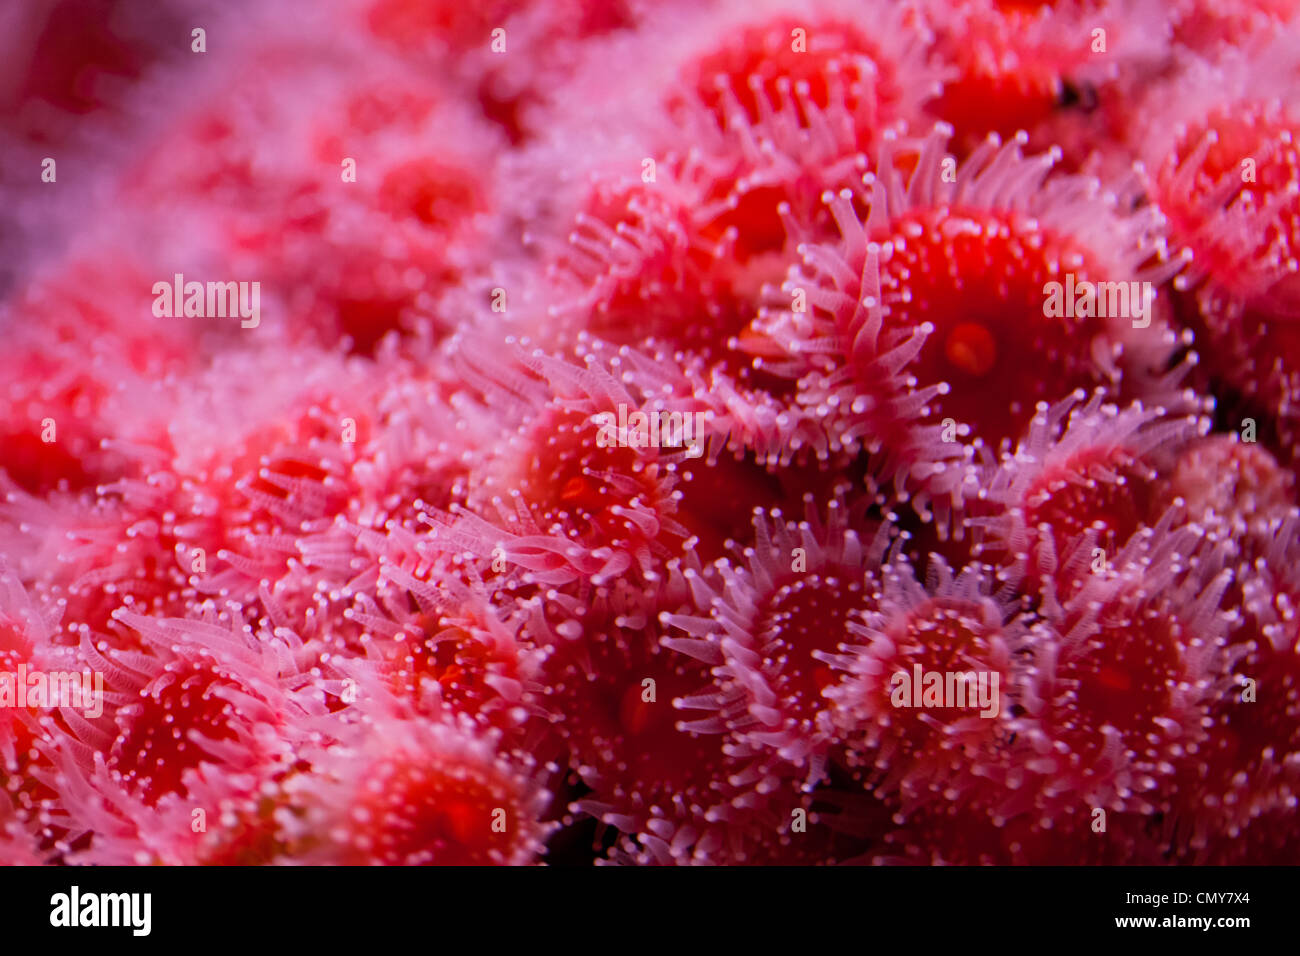 Red sea anemone close up - Stock Image